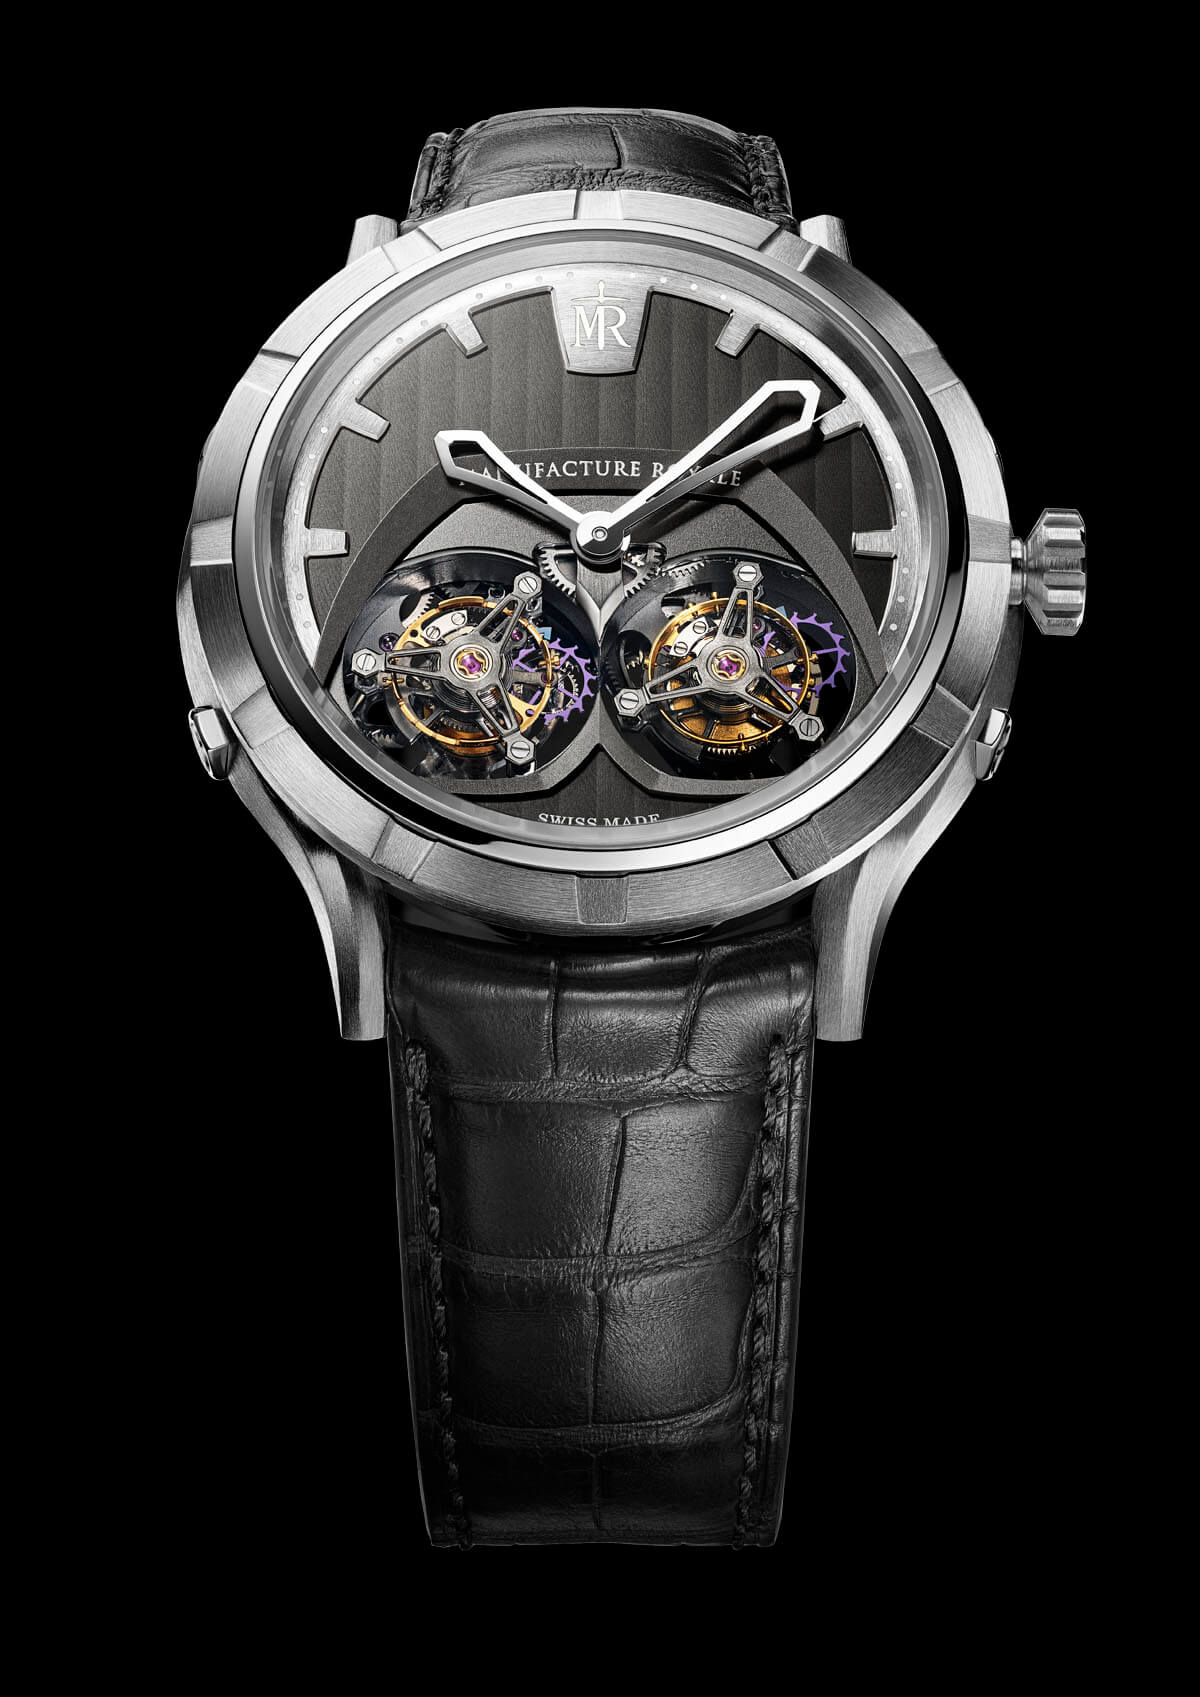 Image of Manufacture Royale 1770 Micromegas